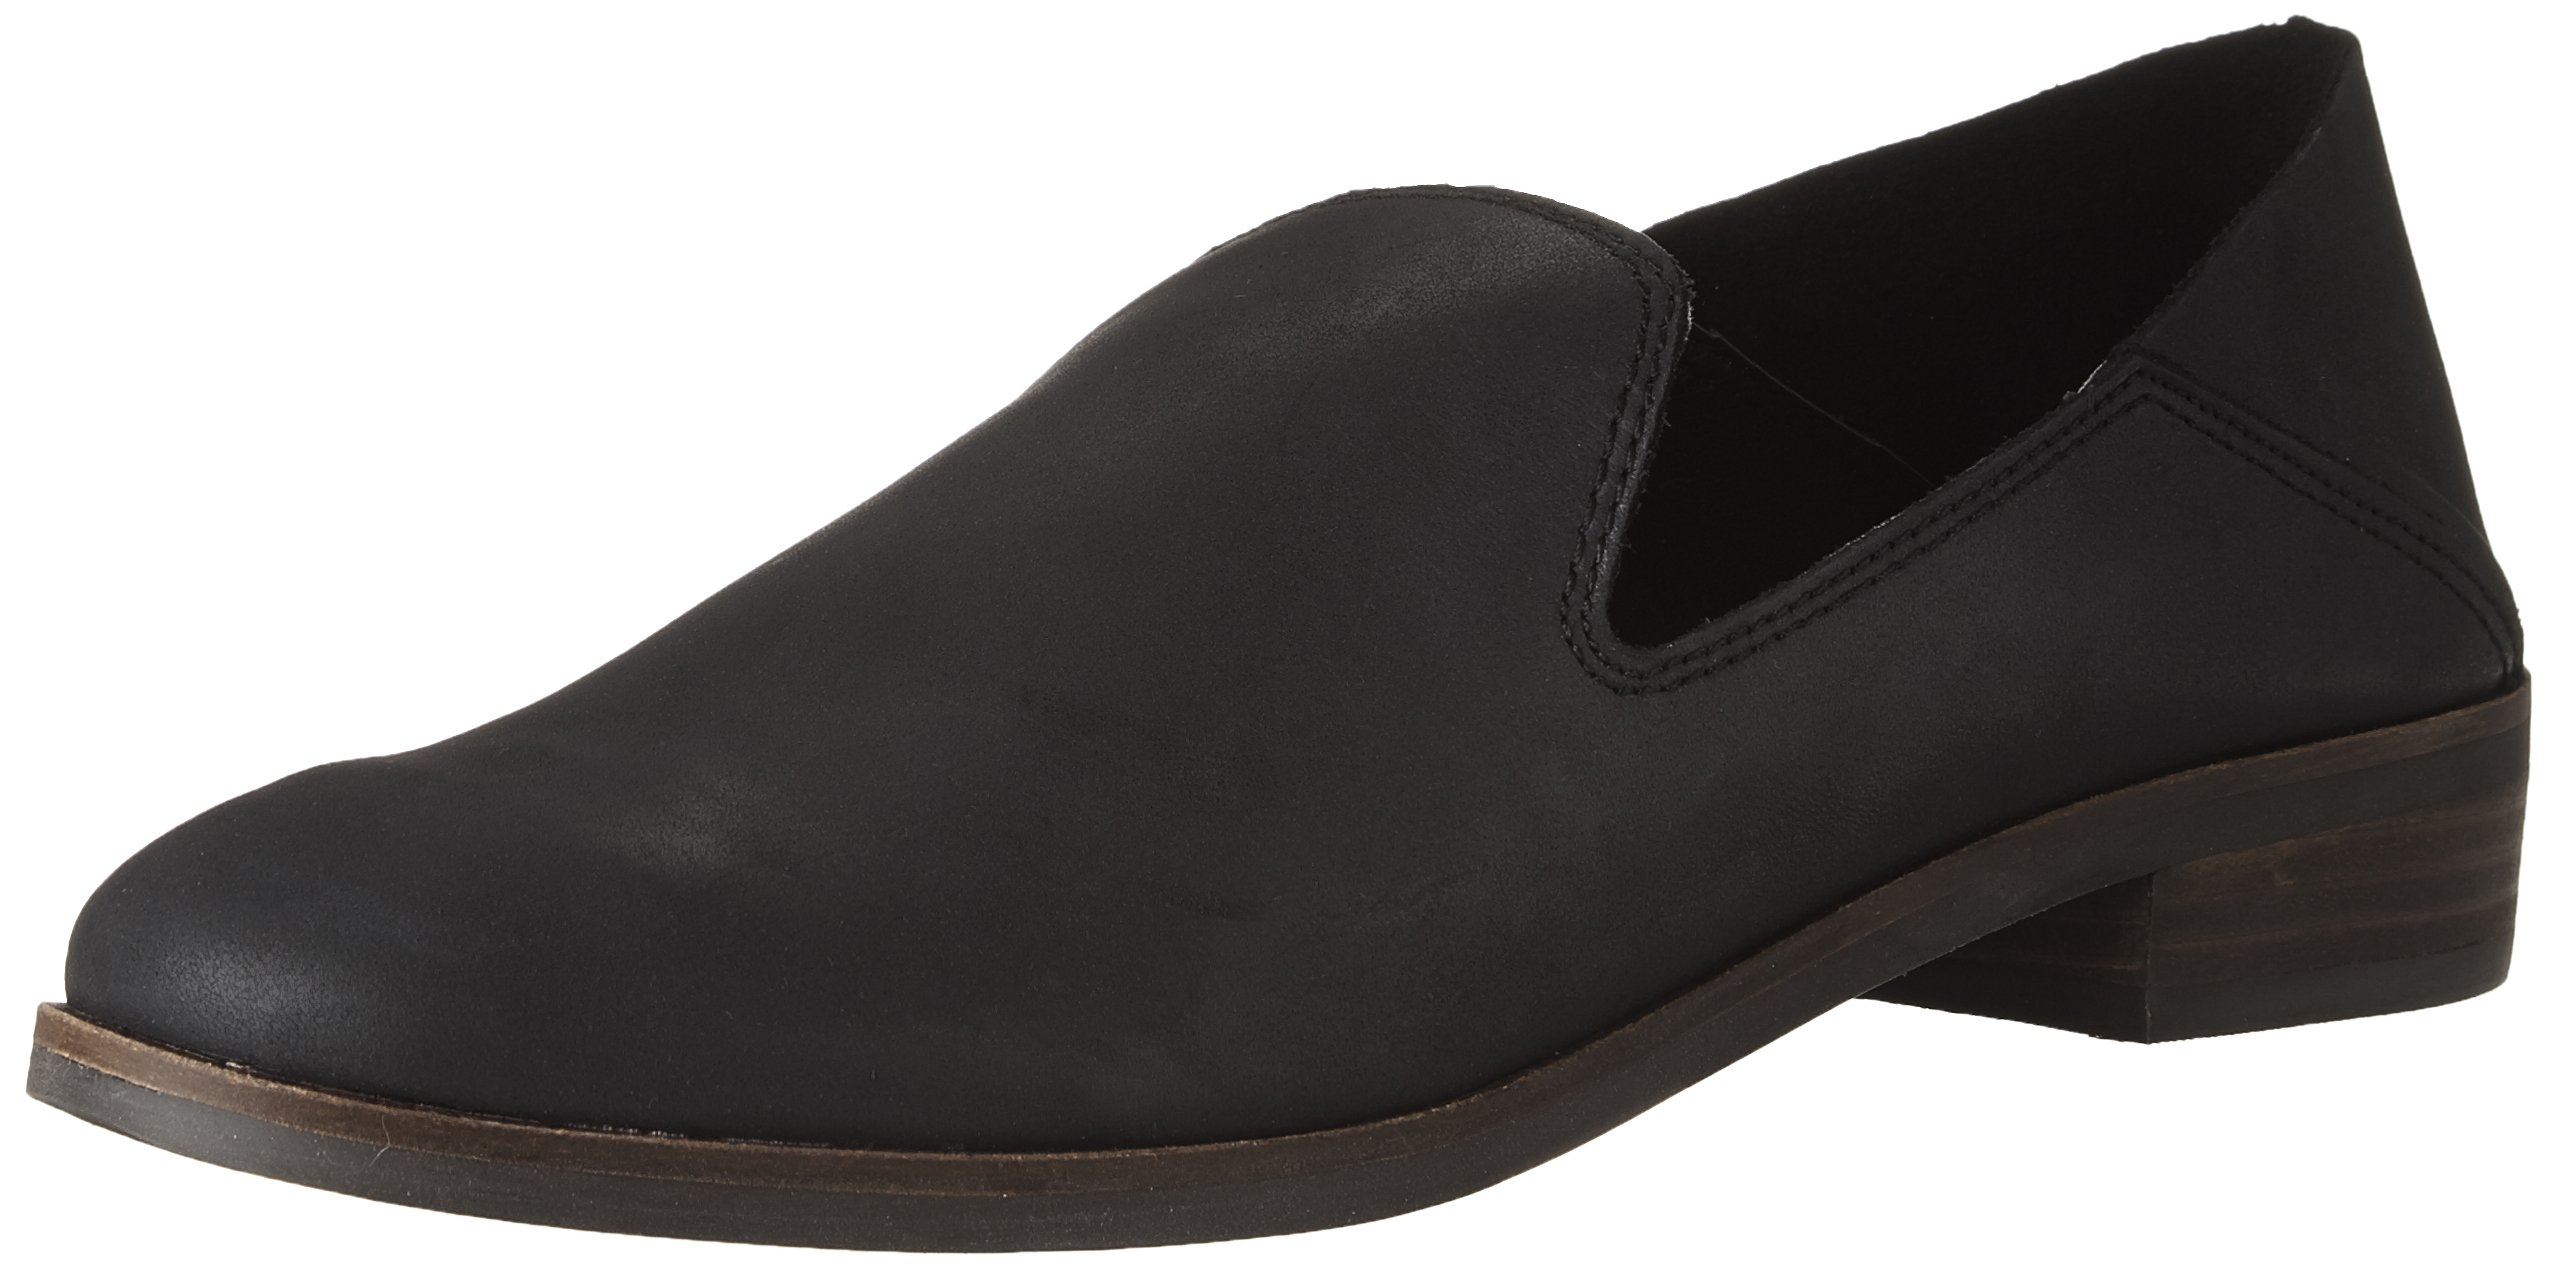 Lucky Brand Women's Cahill Loafer Flat, 6 Medium US,black